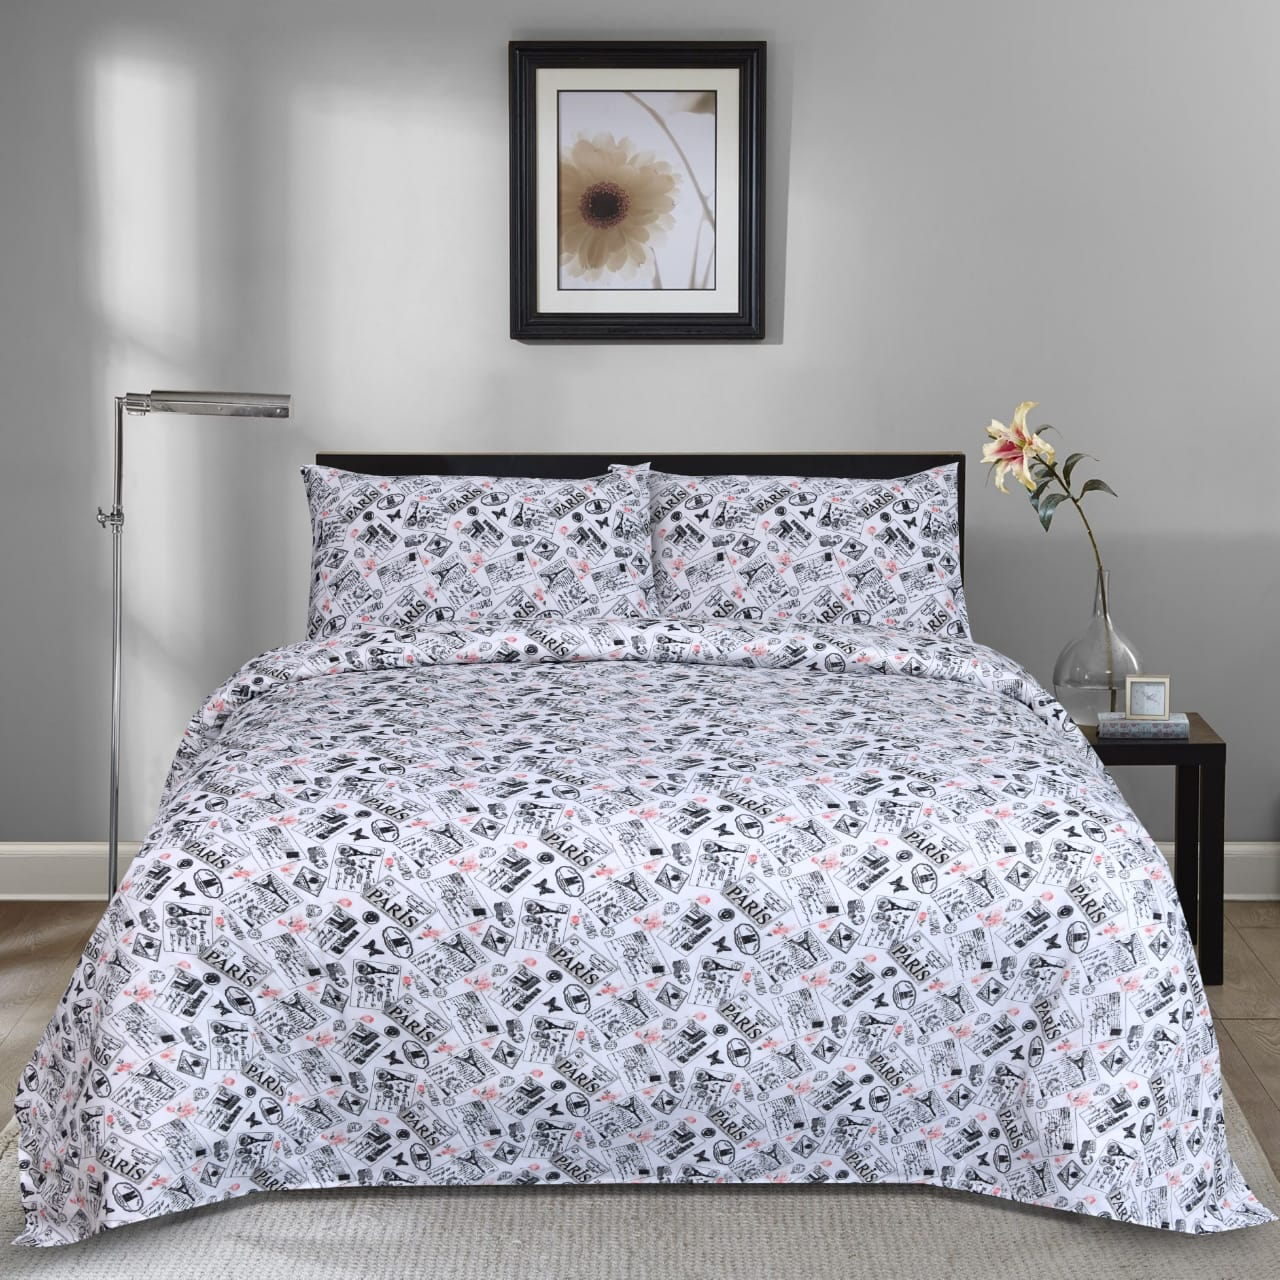 Bonjour Paris Cotton Bed Sheet